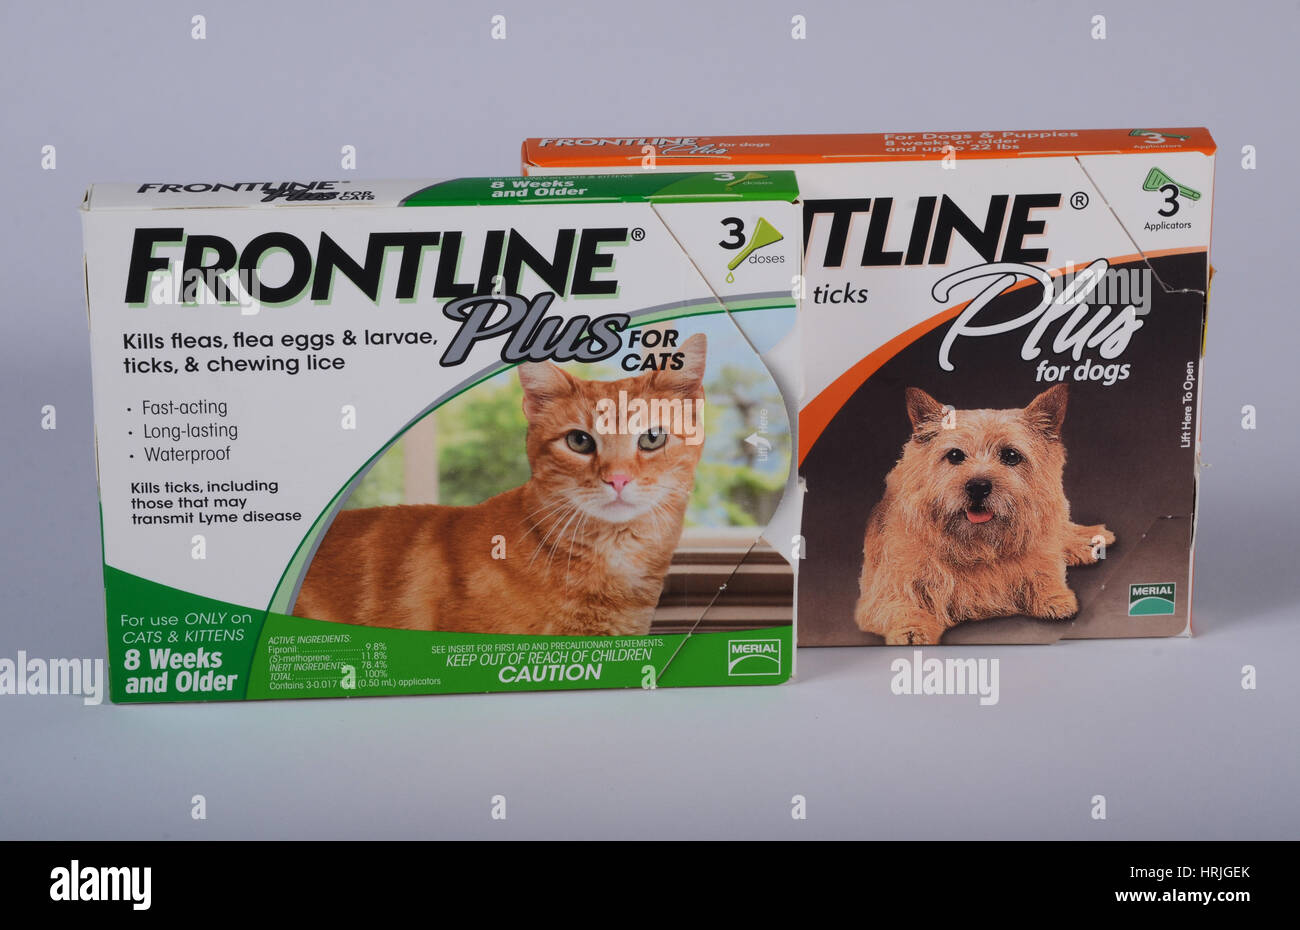 Frontline for Dogs and Cats - Stock Image